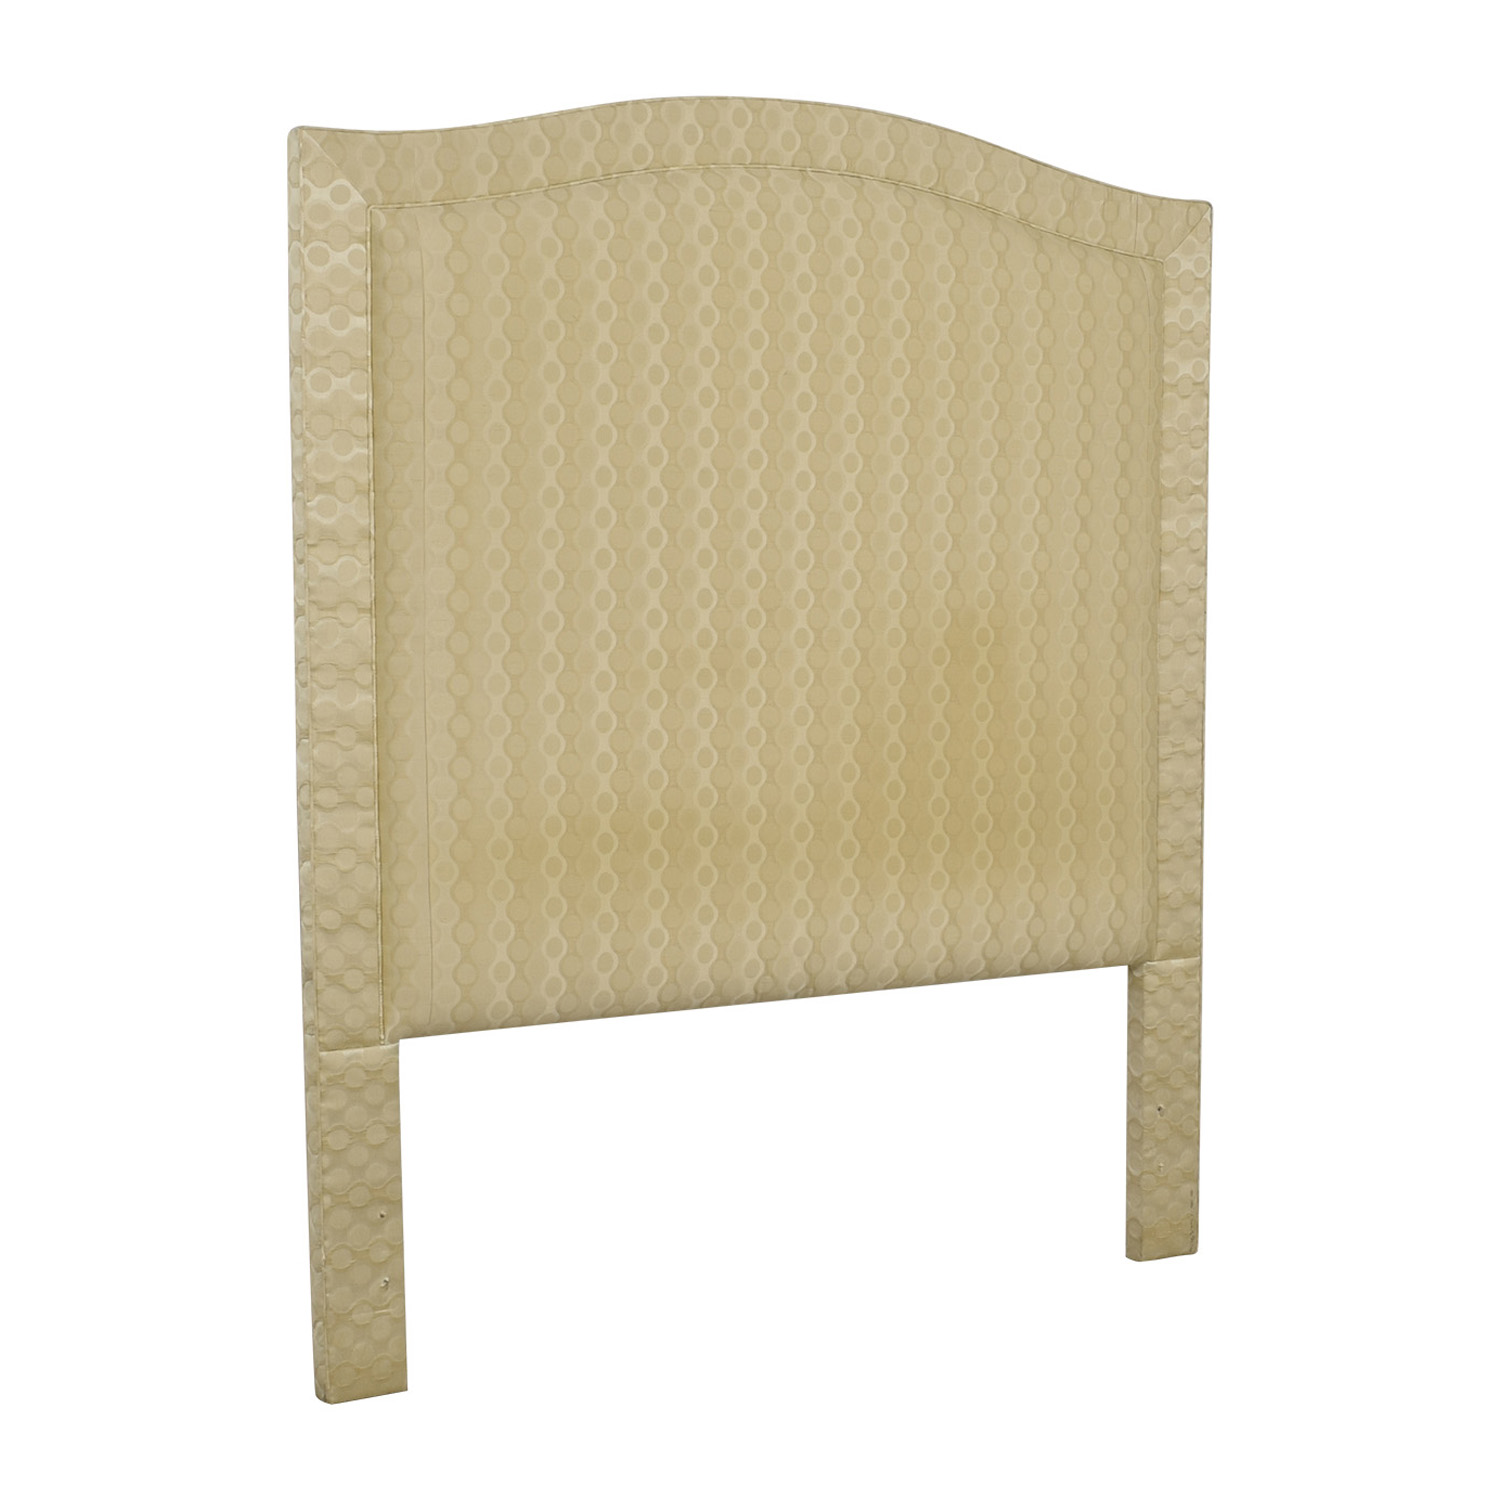 Beige Upholstered Queen Headboard / Headboards